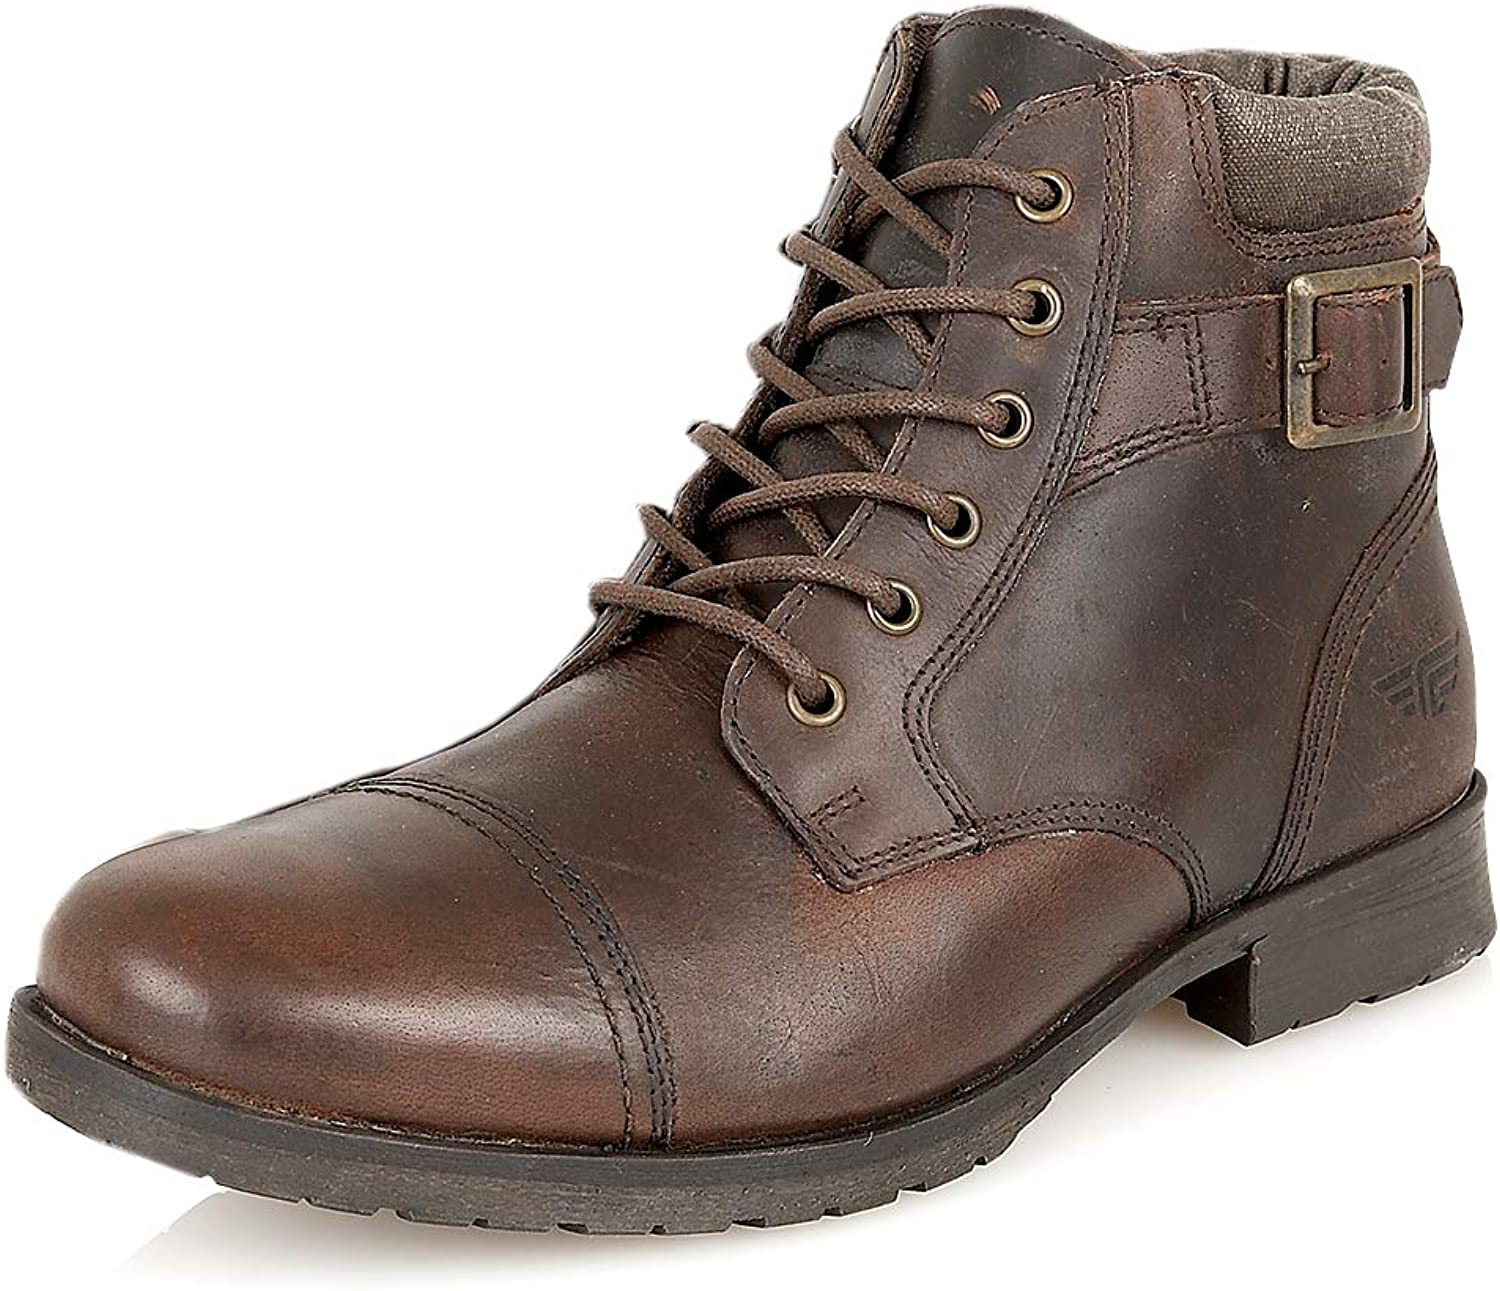 Red Tape Croxdale Boots Tan 10 UK